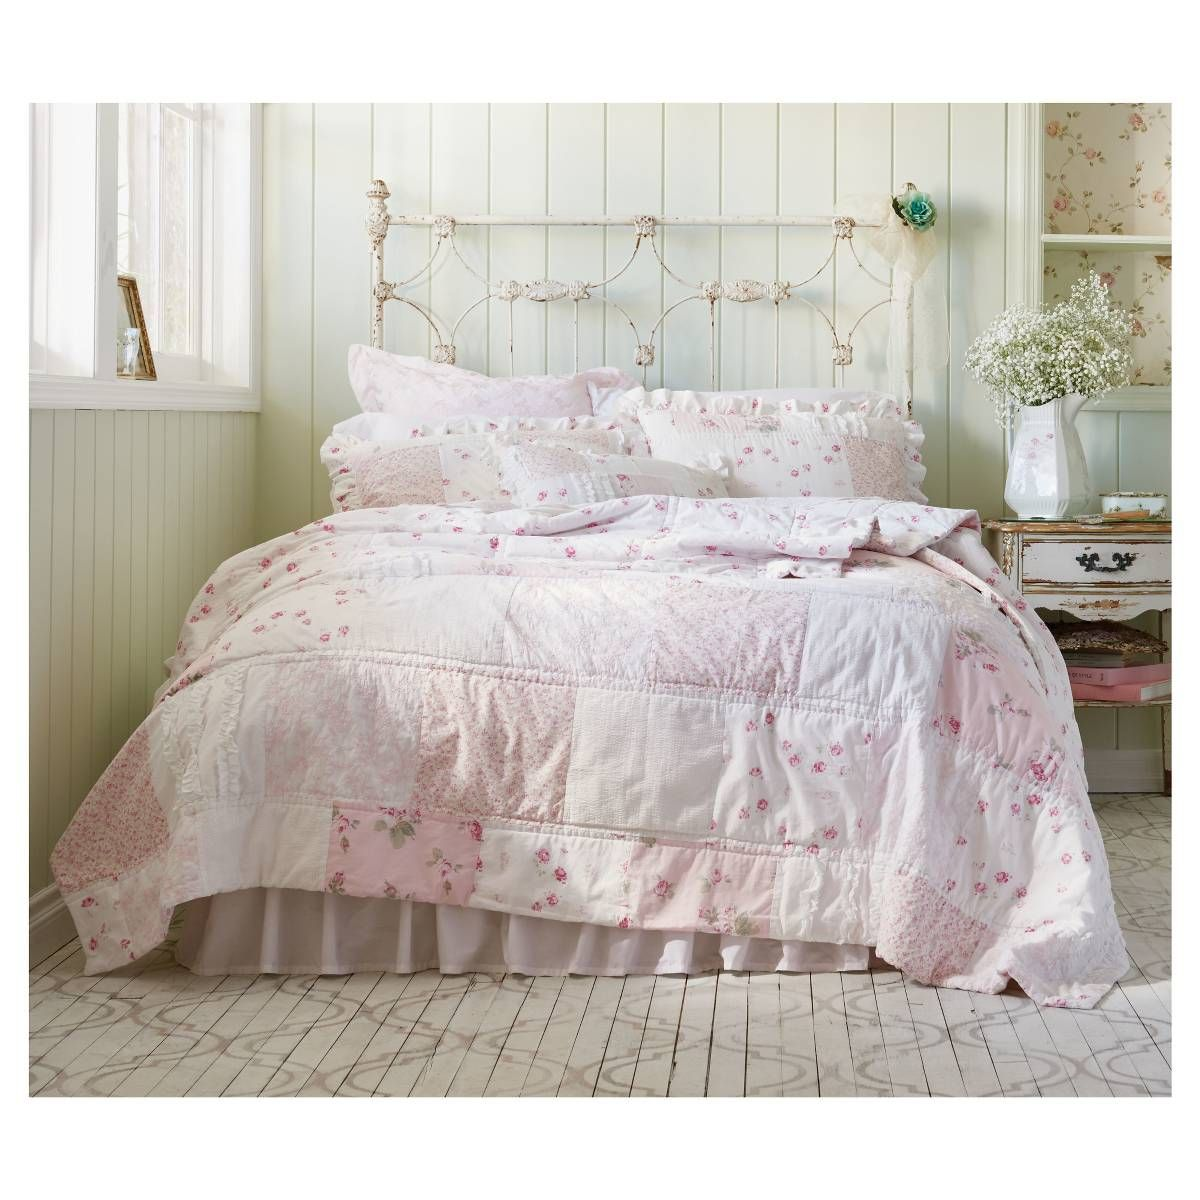 Ditsy Patchwork Bedding Collection Simply Shabby Chic Image 2 Of 2 Chic Bedding Shabby Chic Bedding Shabby Chic Room